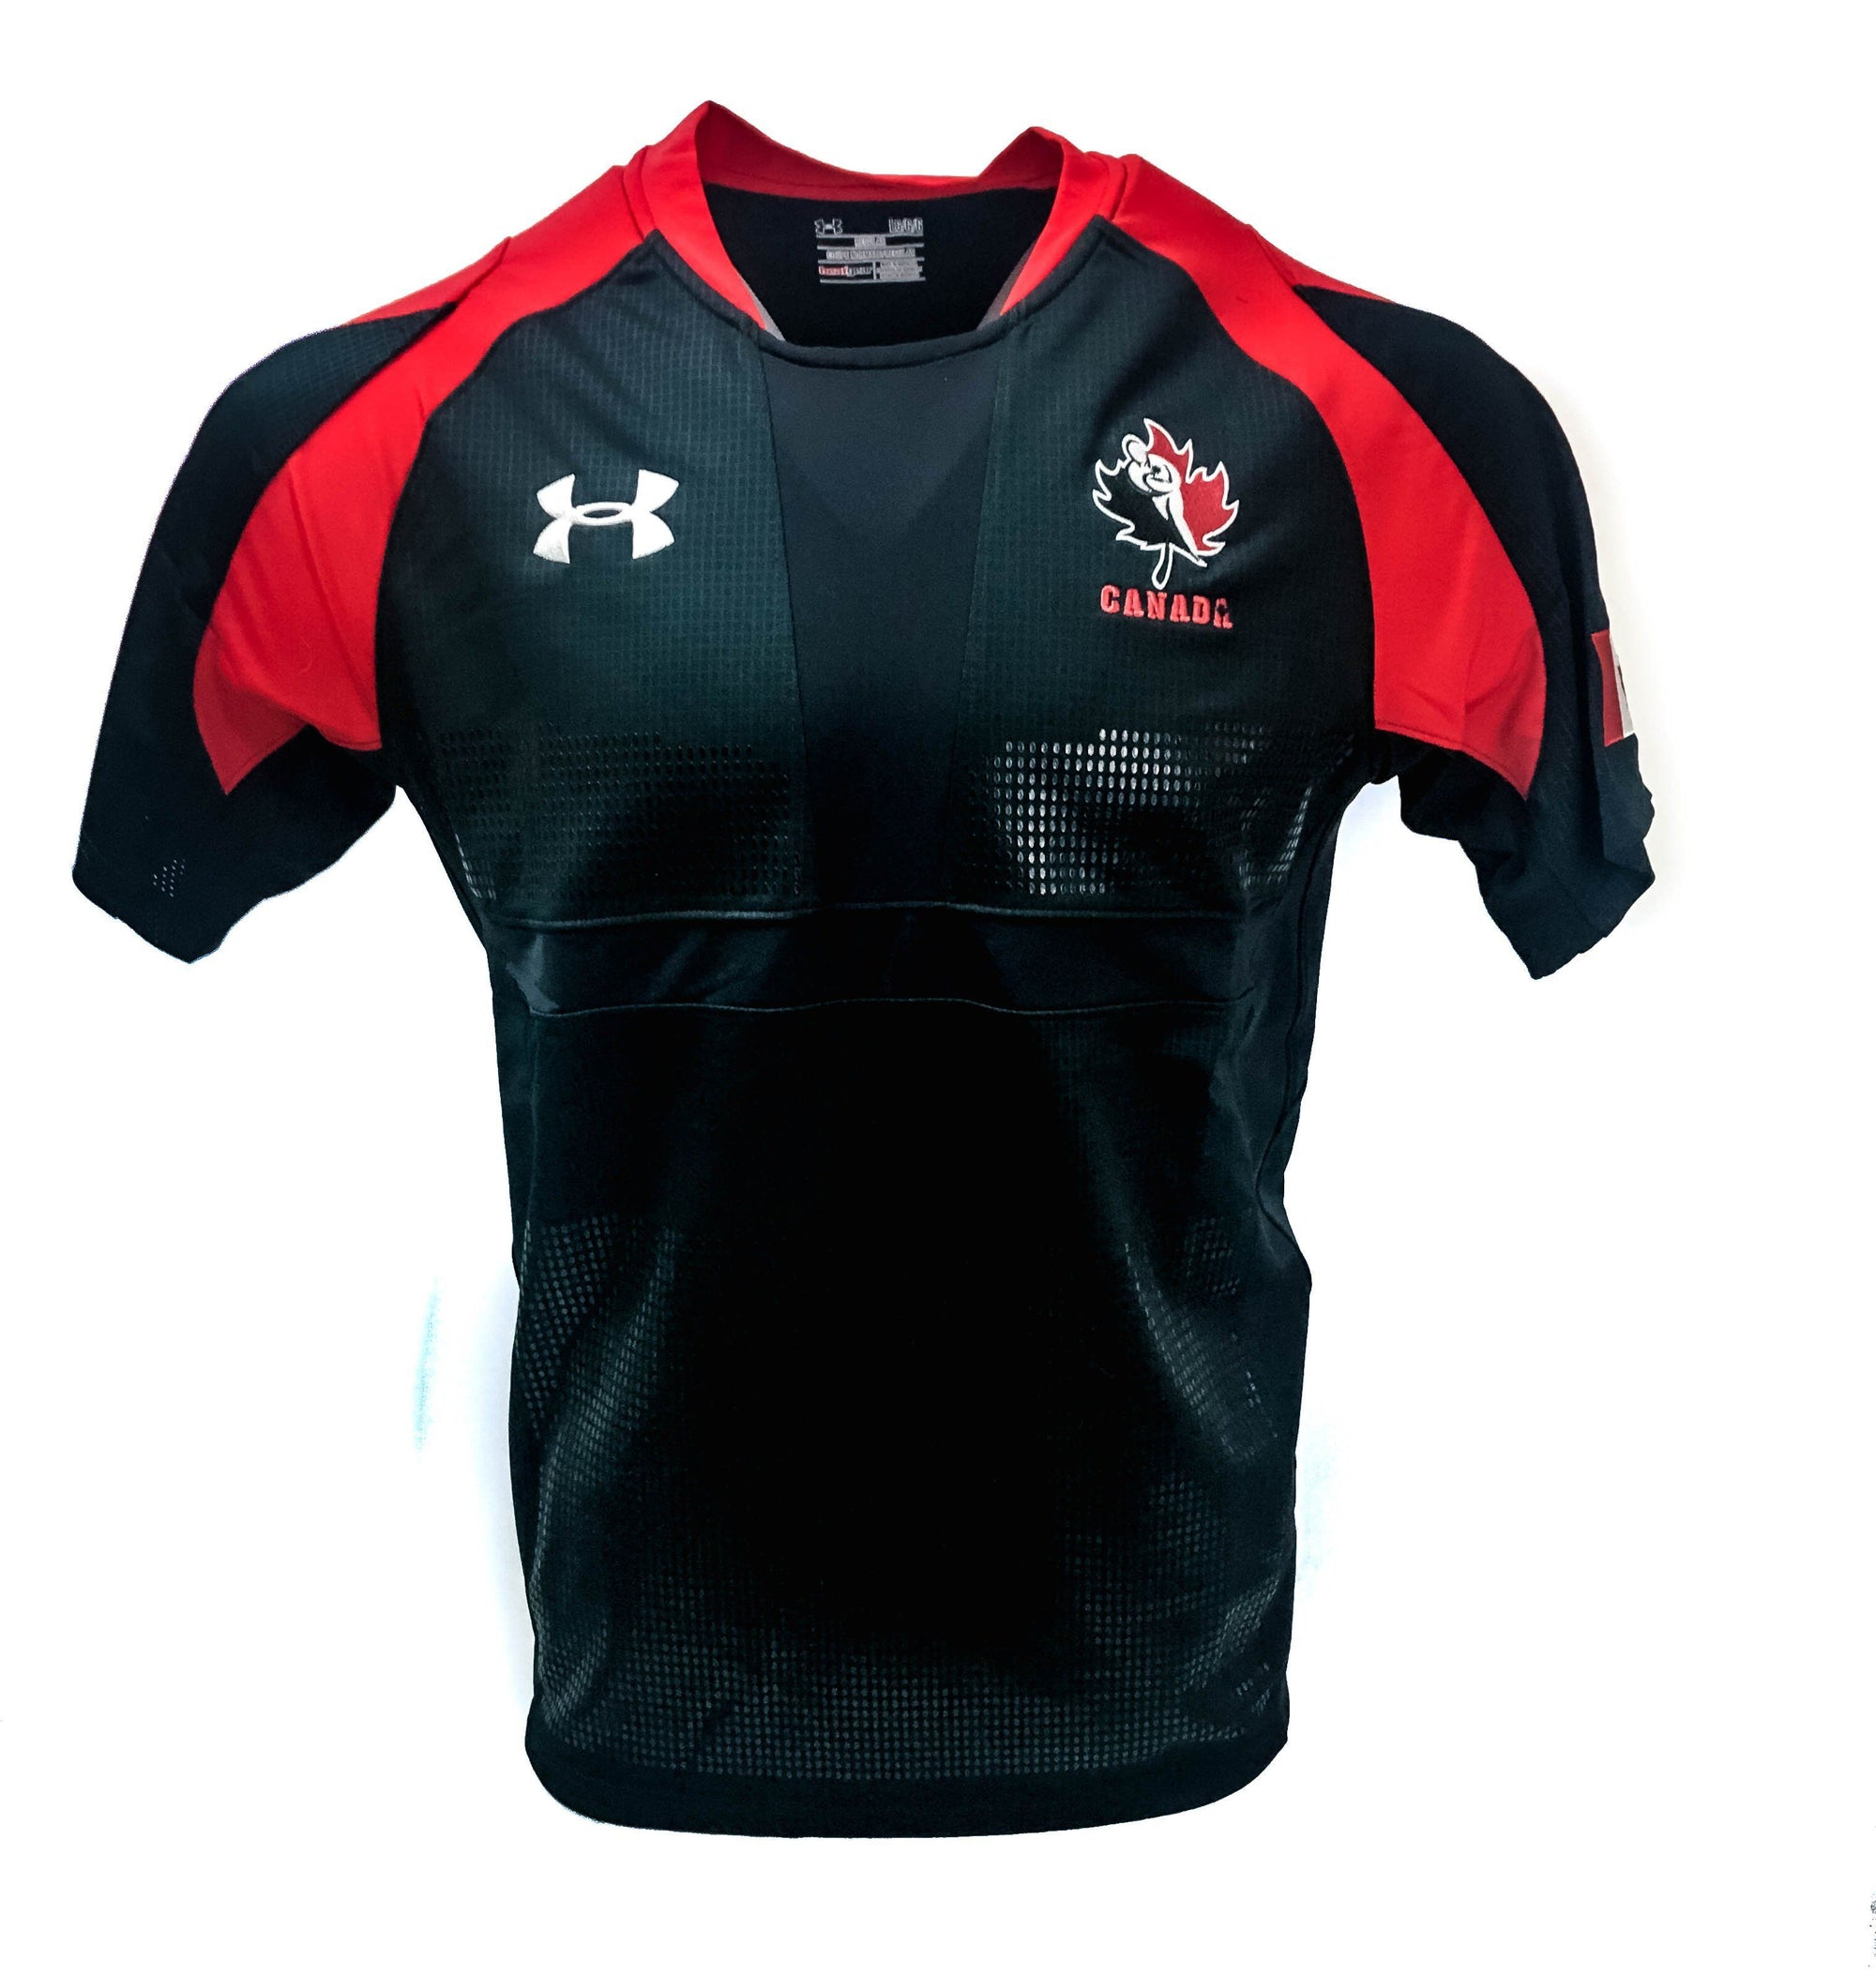 Pitchside - Rugby Canada Official Under Armour Replica  Away